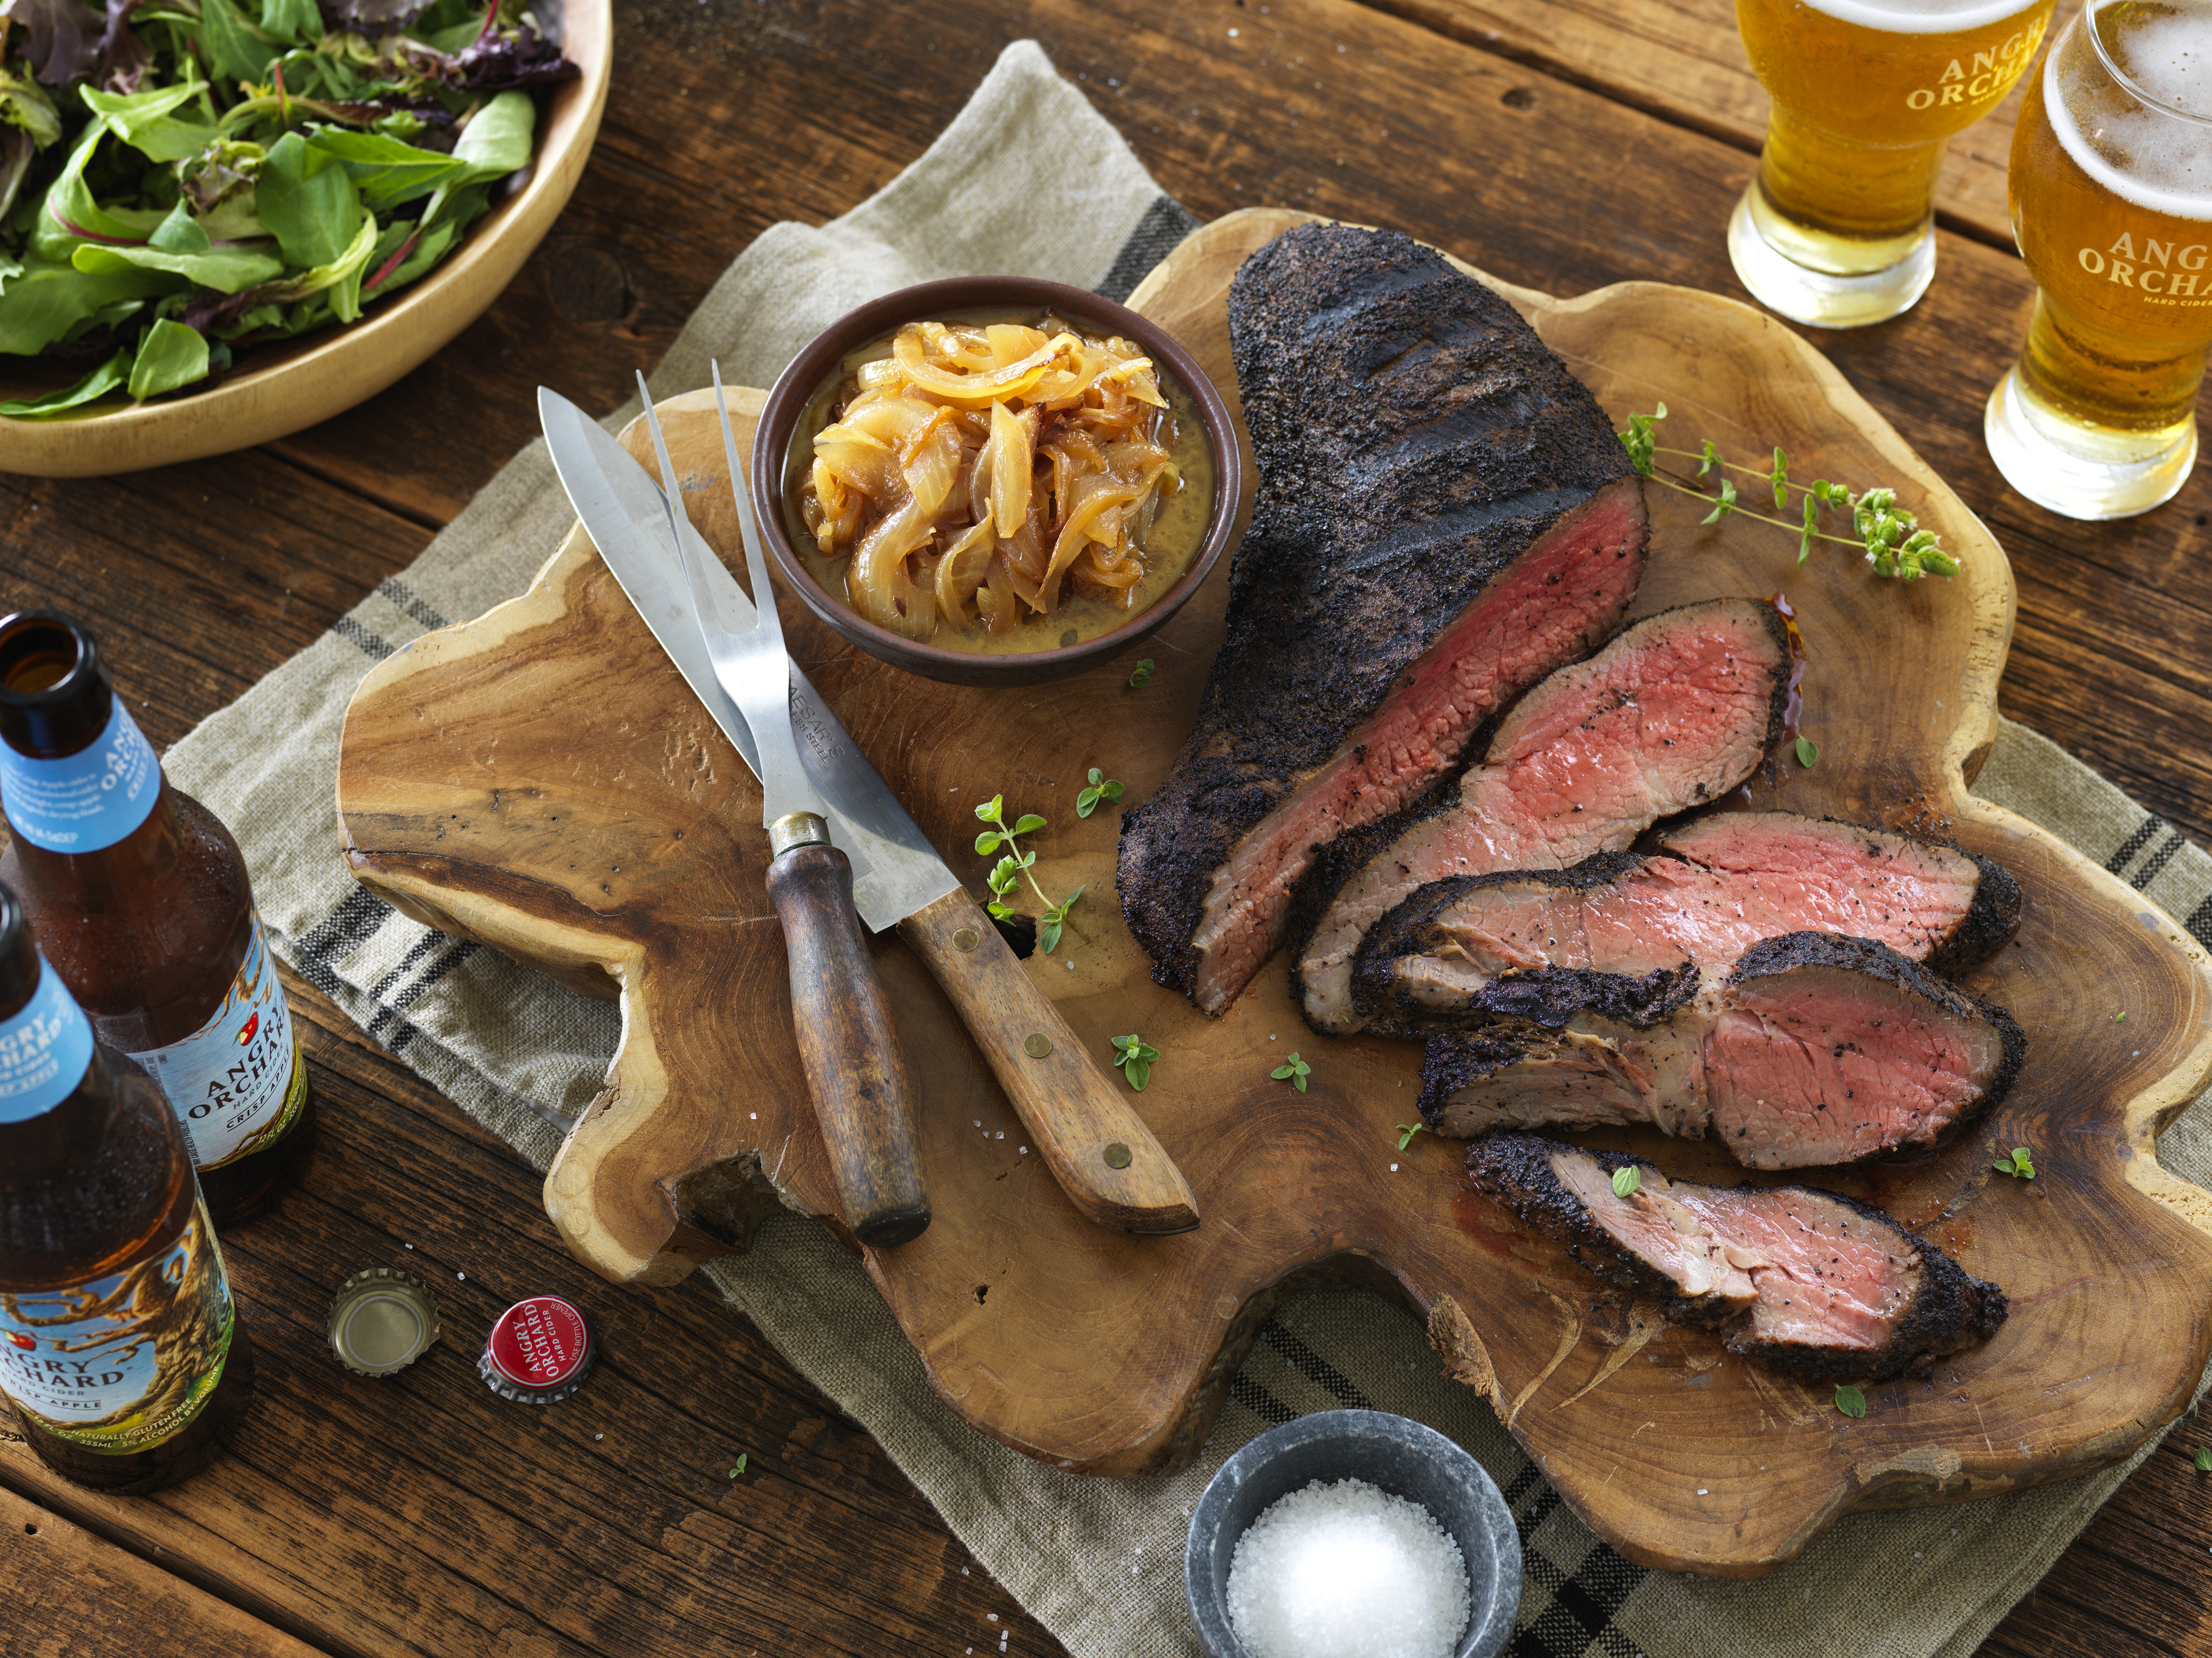 Angry Orchard's – Spice Rubbed Tri-Tip Steak with Cider Onion Relish